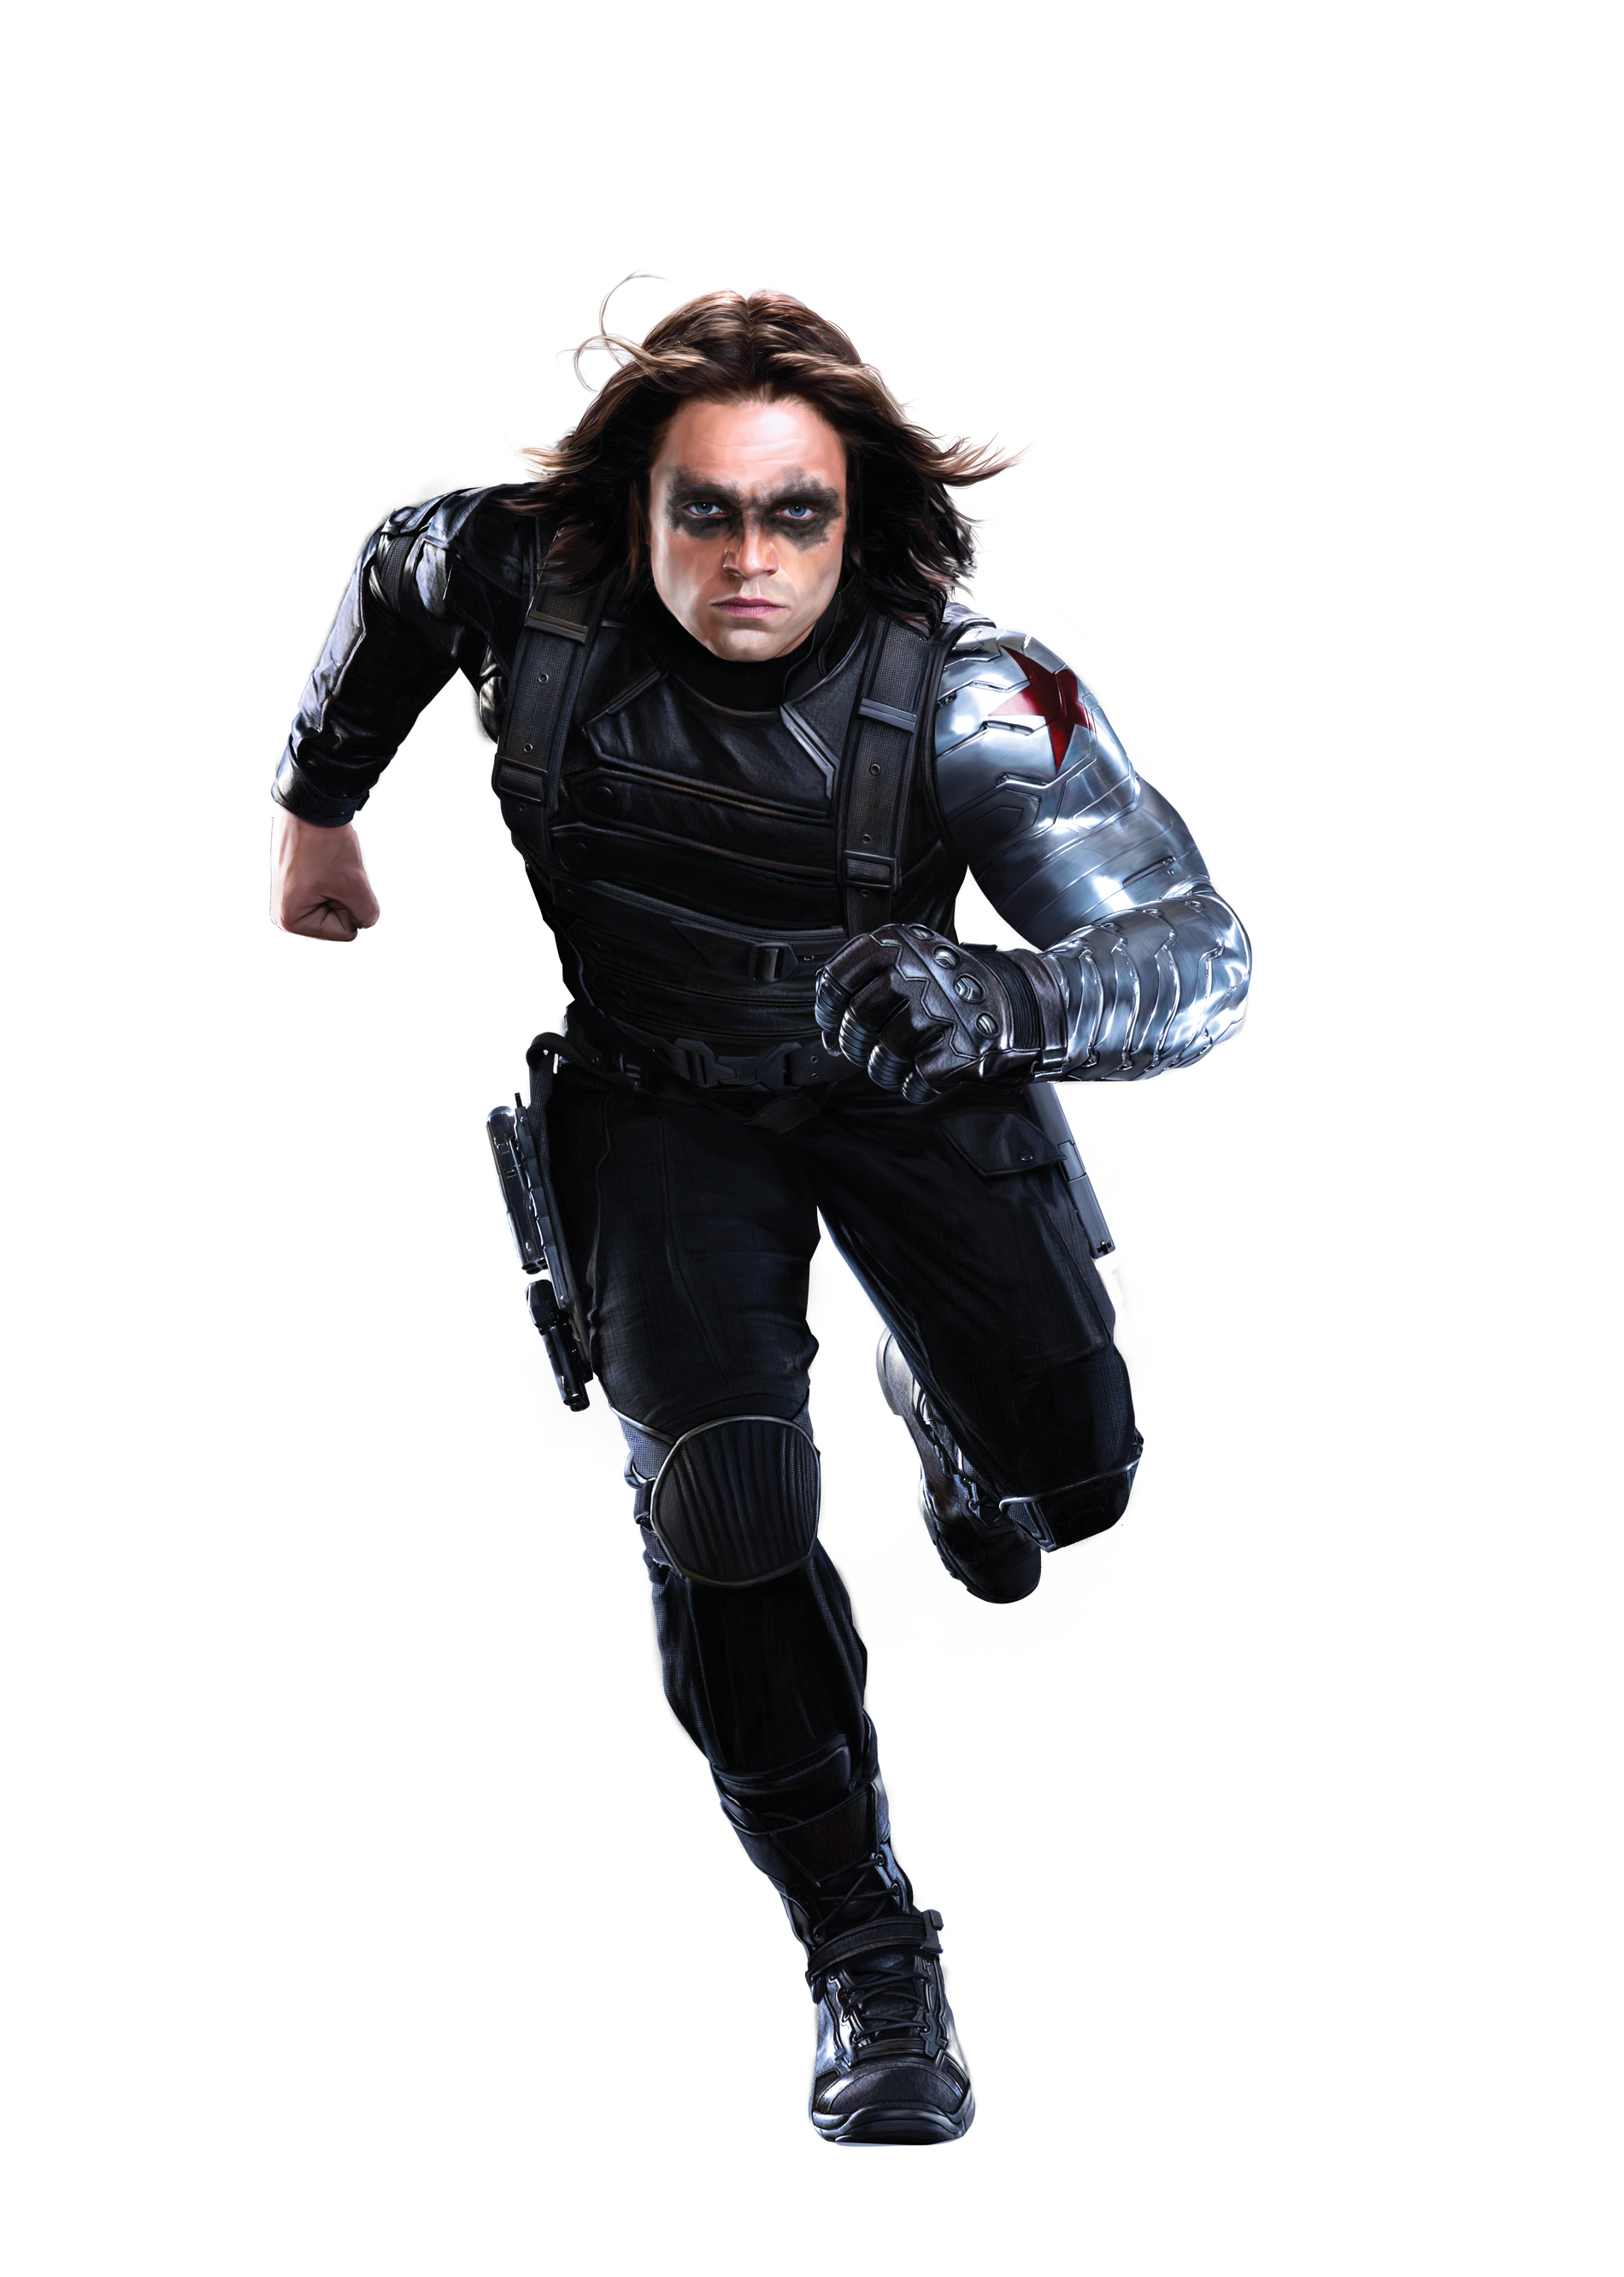 The winter soldier png. Image bucky barnes adventures